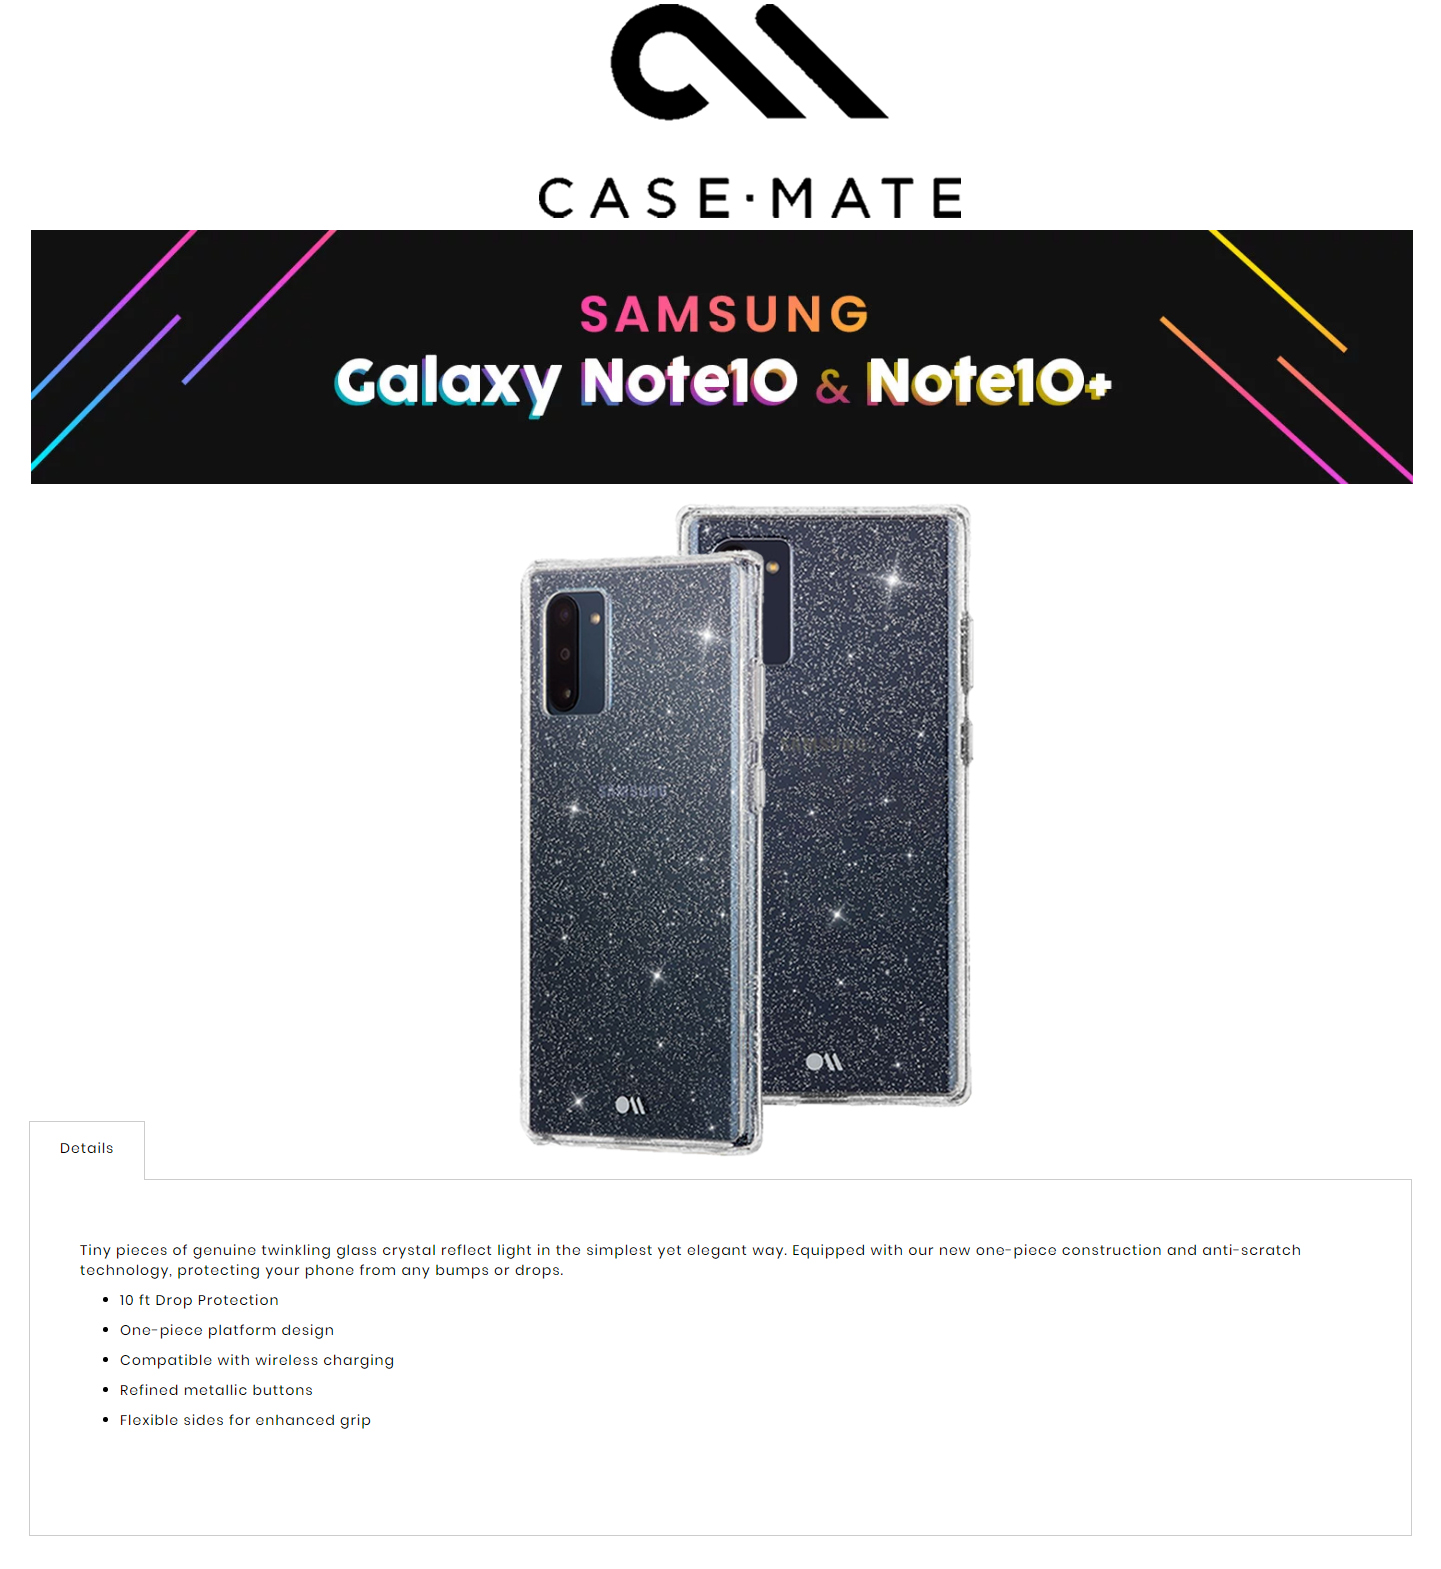 /Otterbox/846127186100/1-SDES-fx-case-mate-sheer-crystal-samsung-galaxy-note-10-clear-color-forexengineer-authorised-malaysia-retailer